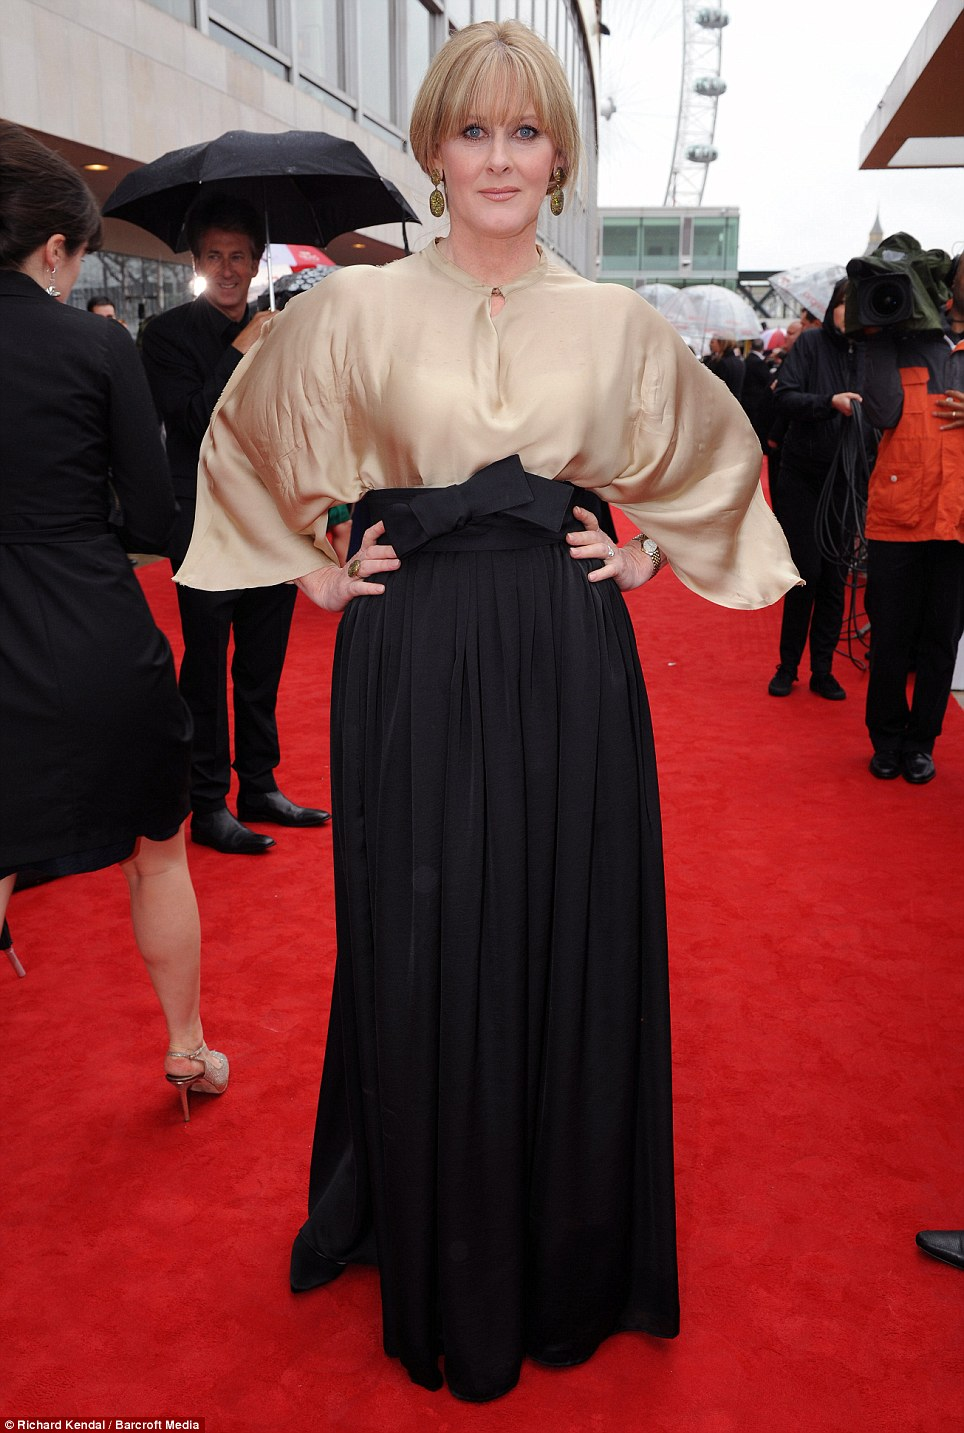 Something different: Actress Sarah Lancashire kept to the nude trend, but her outfit was a bit different from most